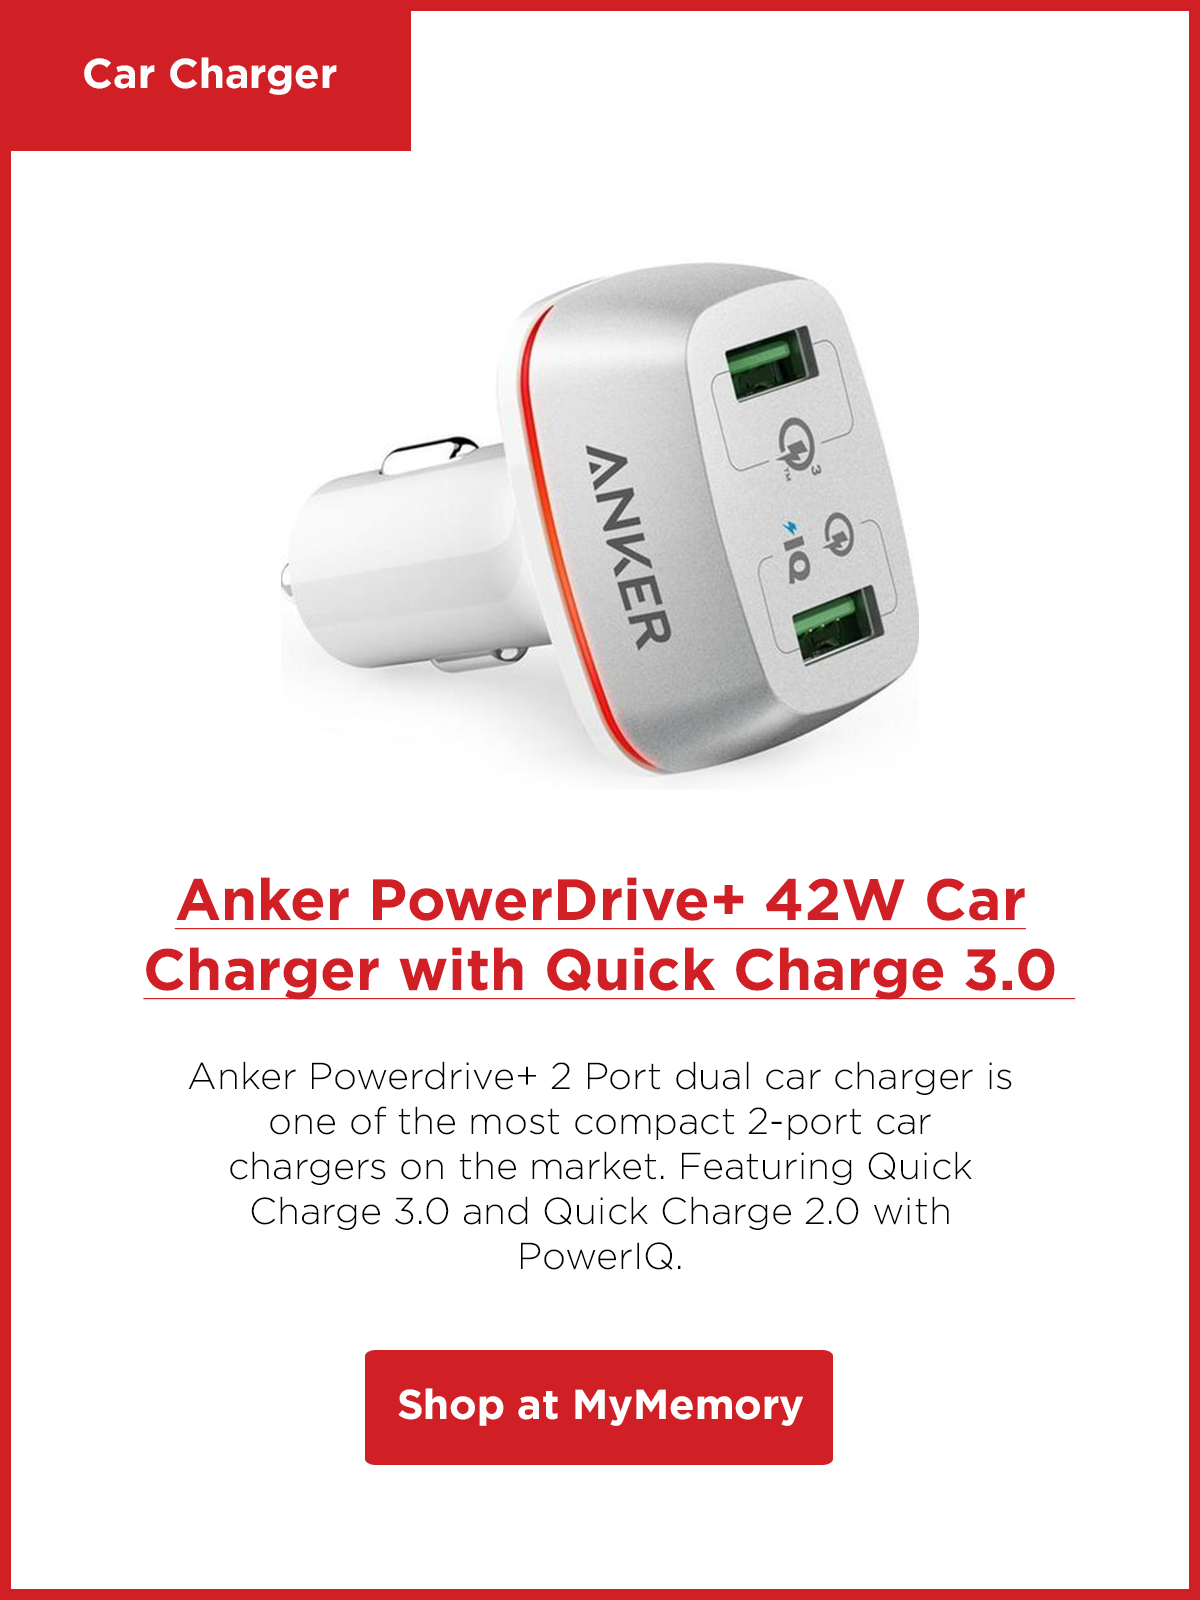 Anker PowerDrive+ 2 Ports 42W Dual USB Car Charger with Quick Charge 3.0 - White